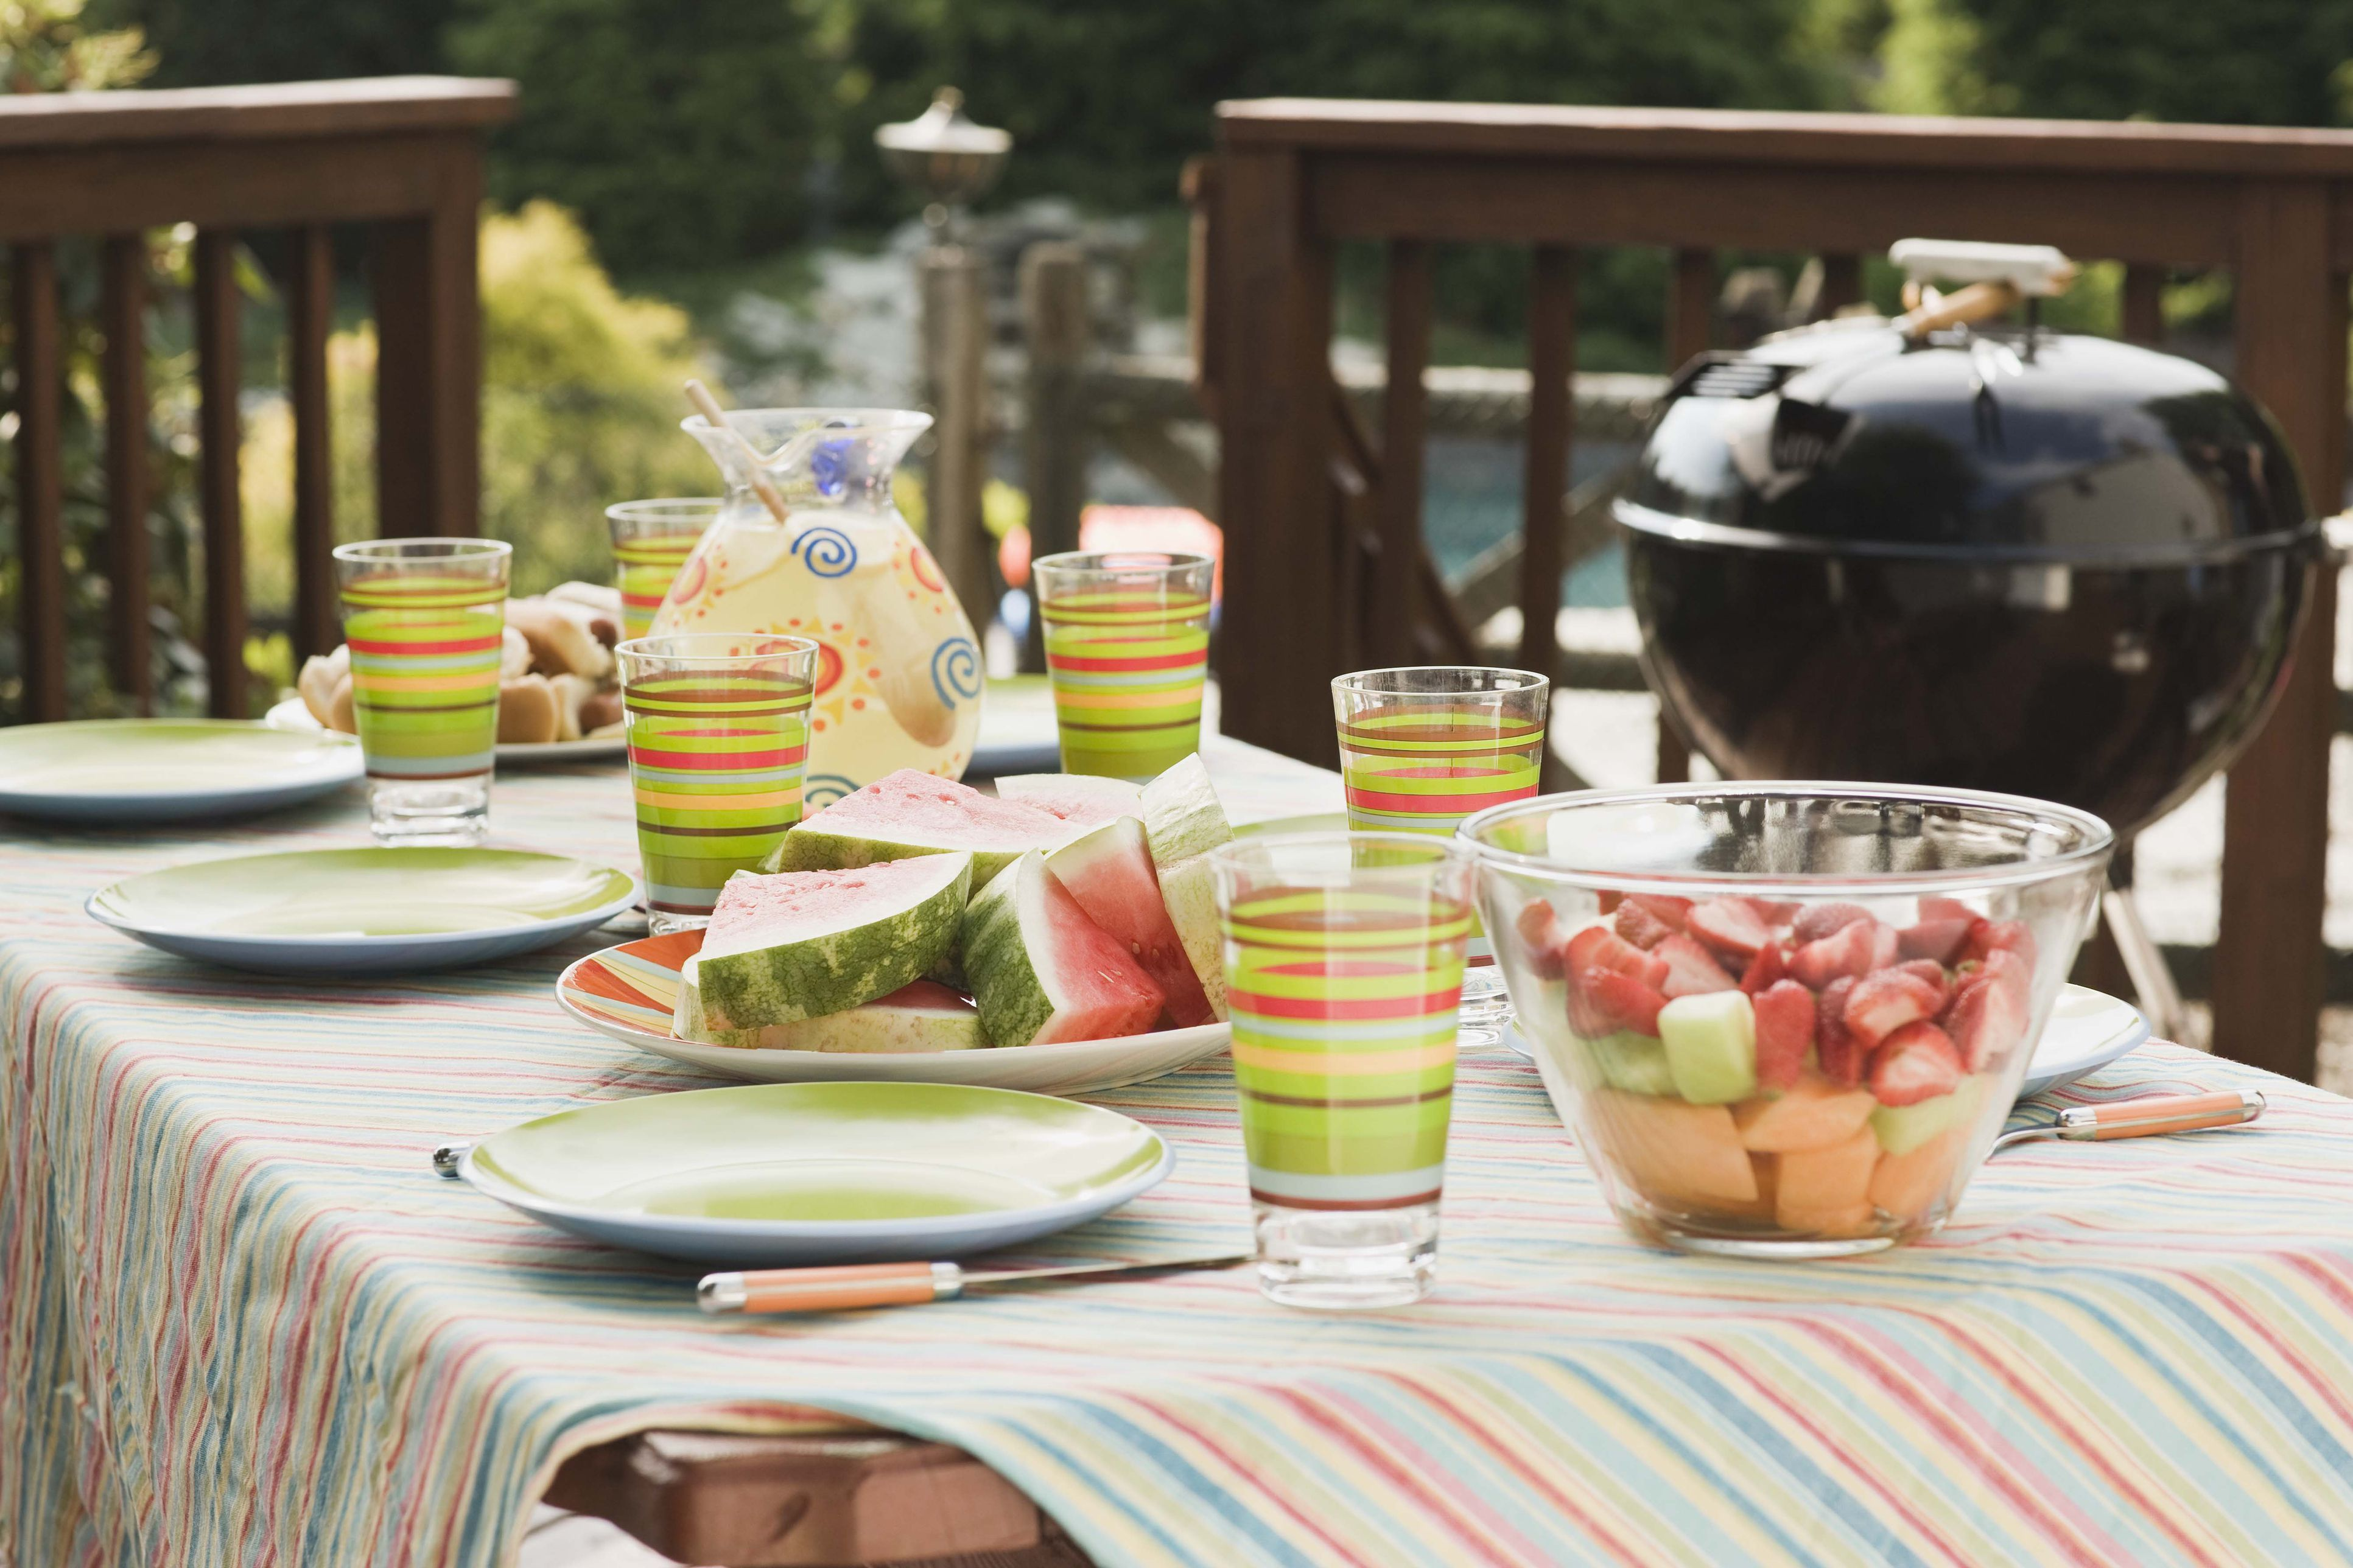 Table setting for picnic